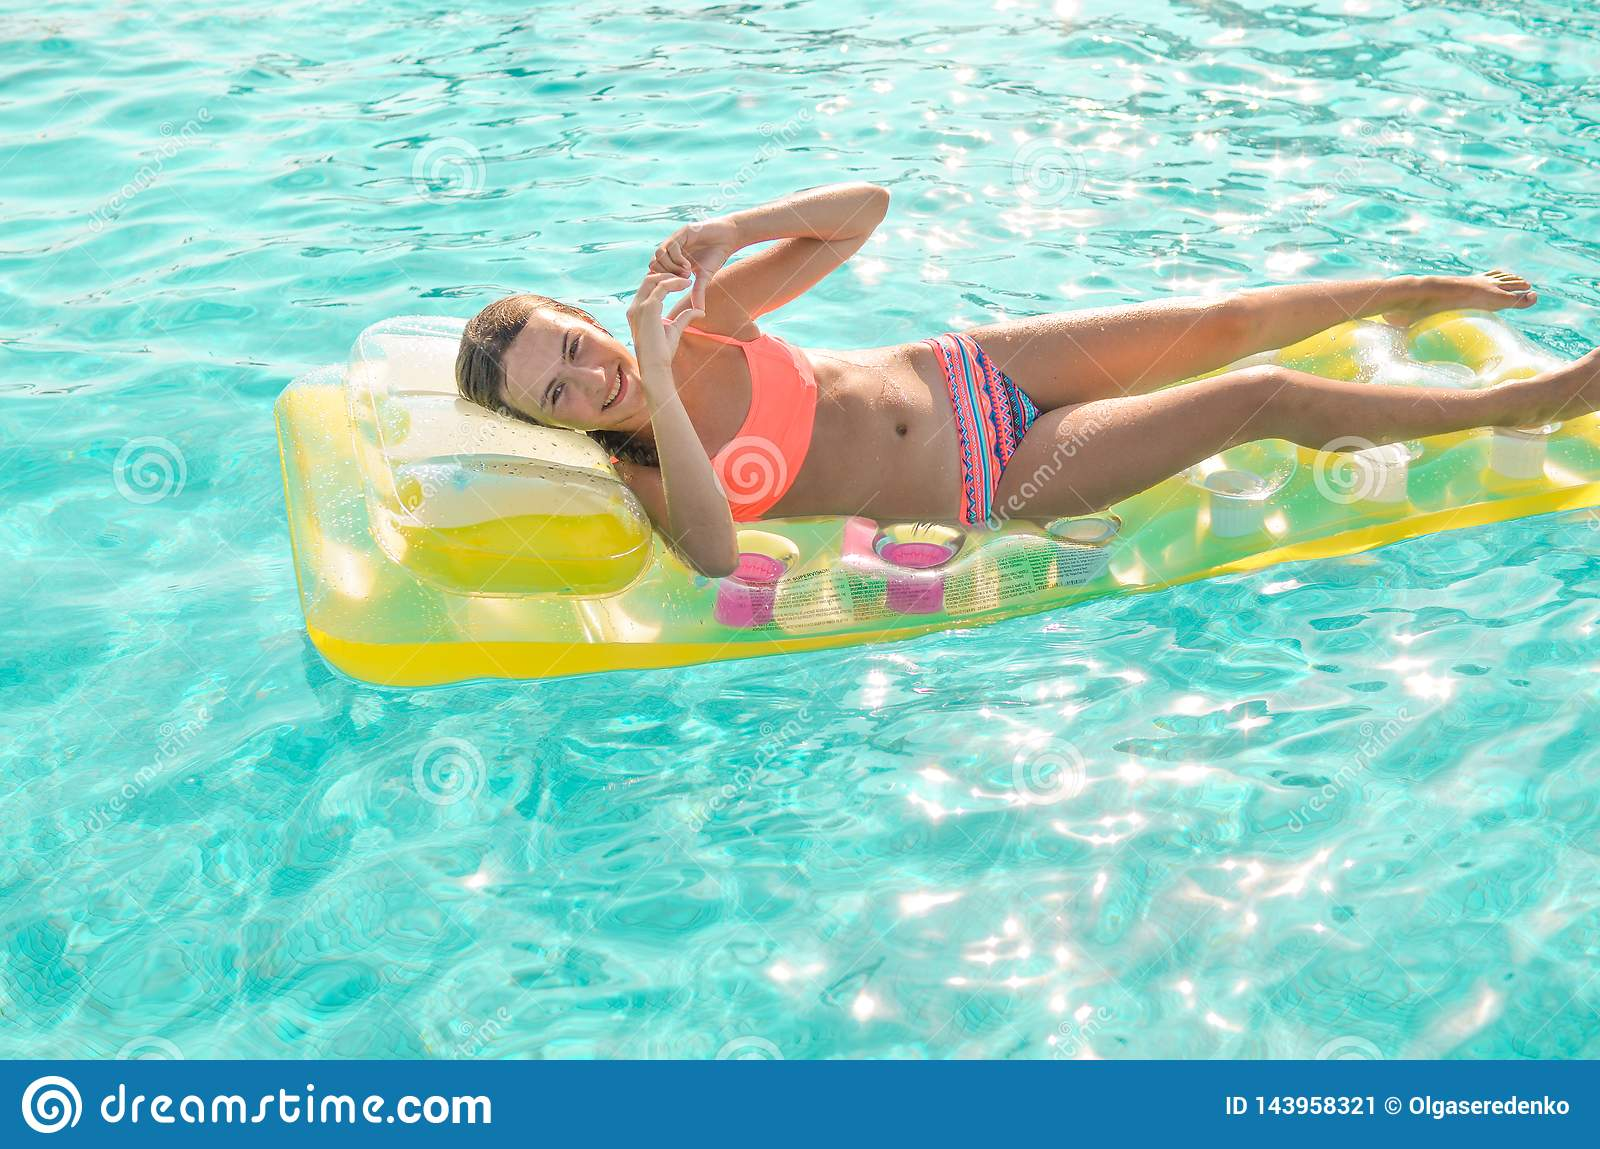 Smiling teen girl floating in the turquoise pool in bright coral bikini on a yellow mattress. Girl shows heart symbol